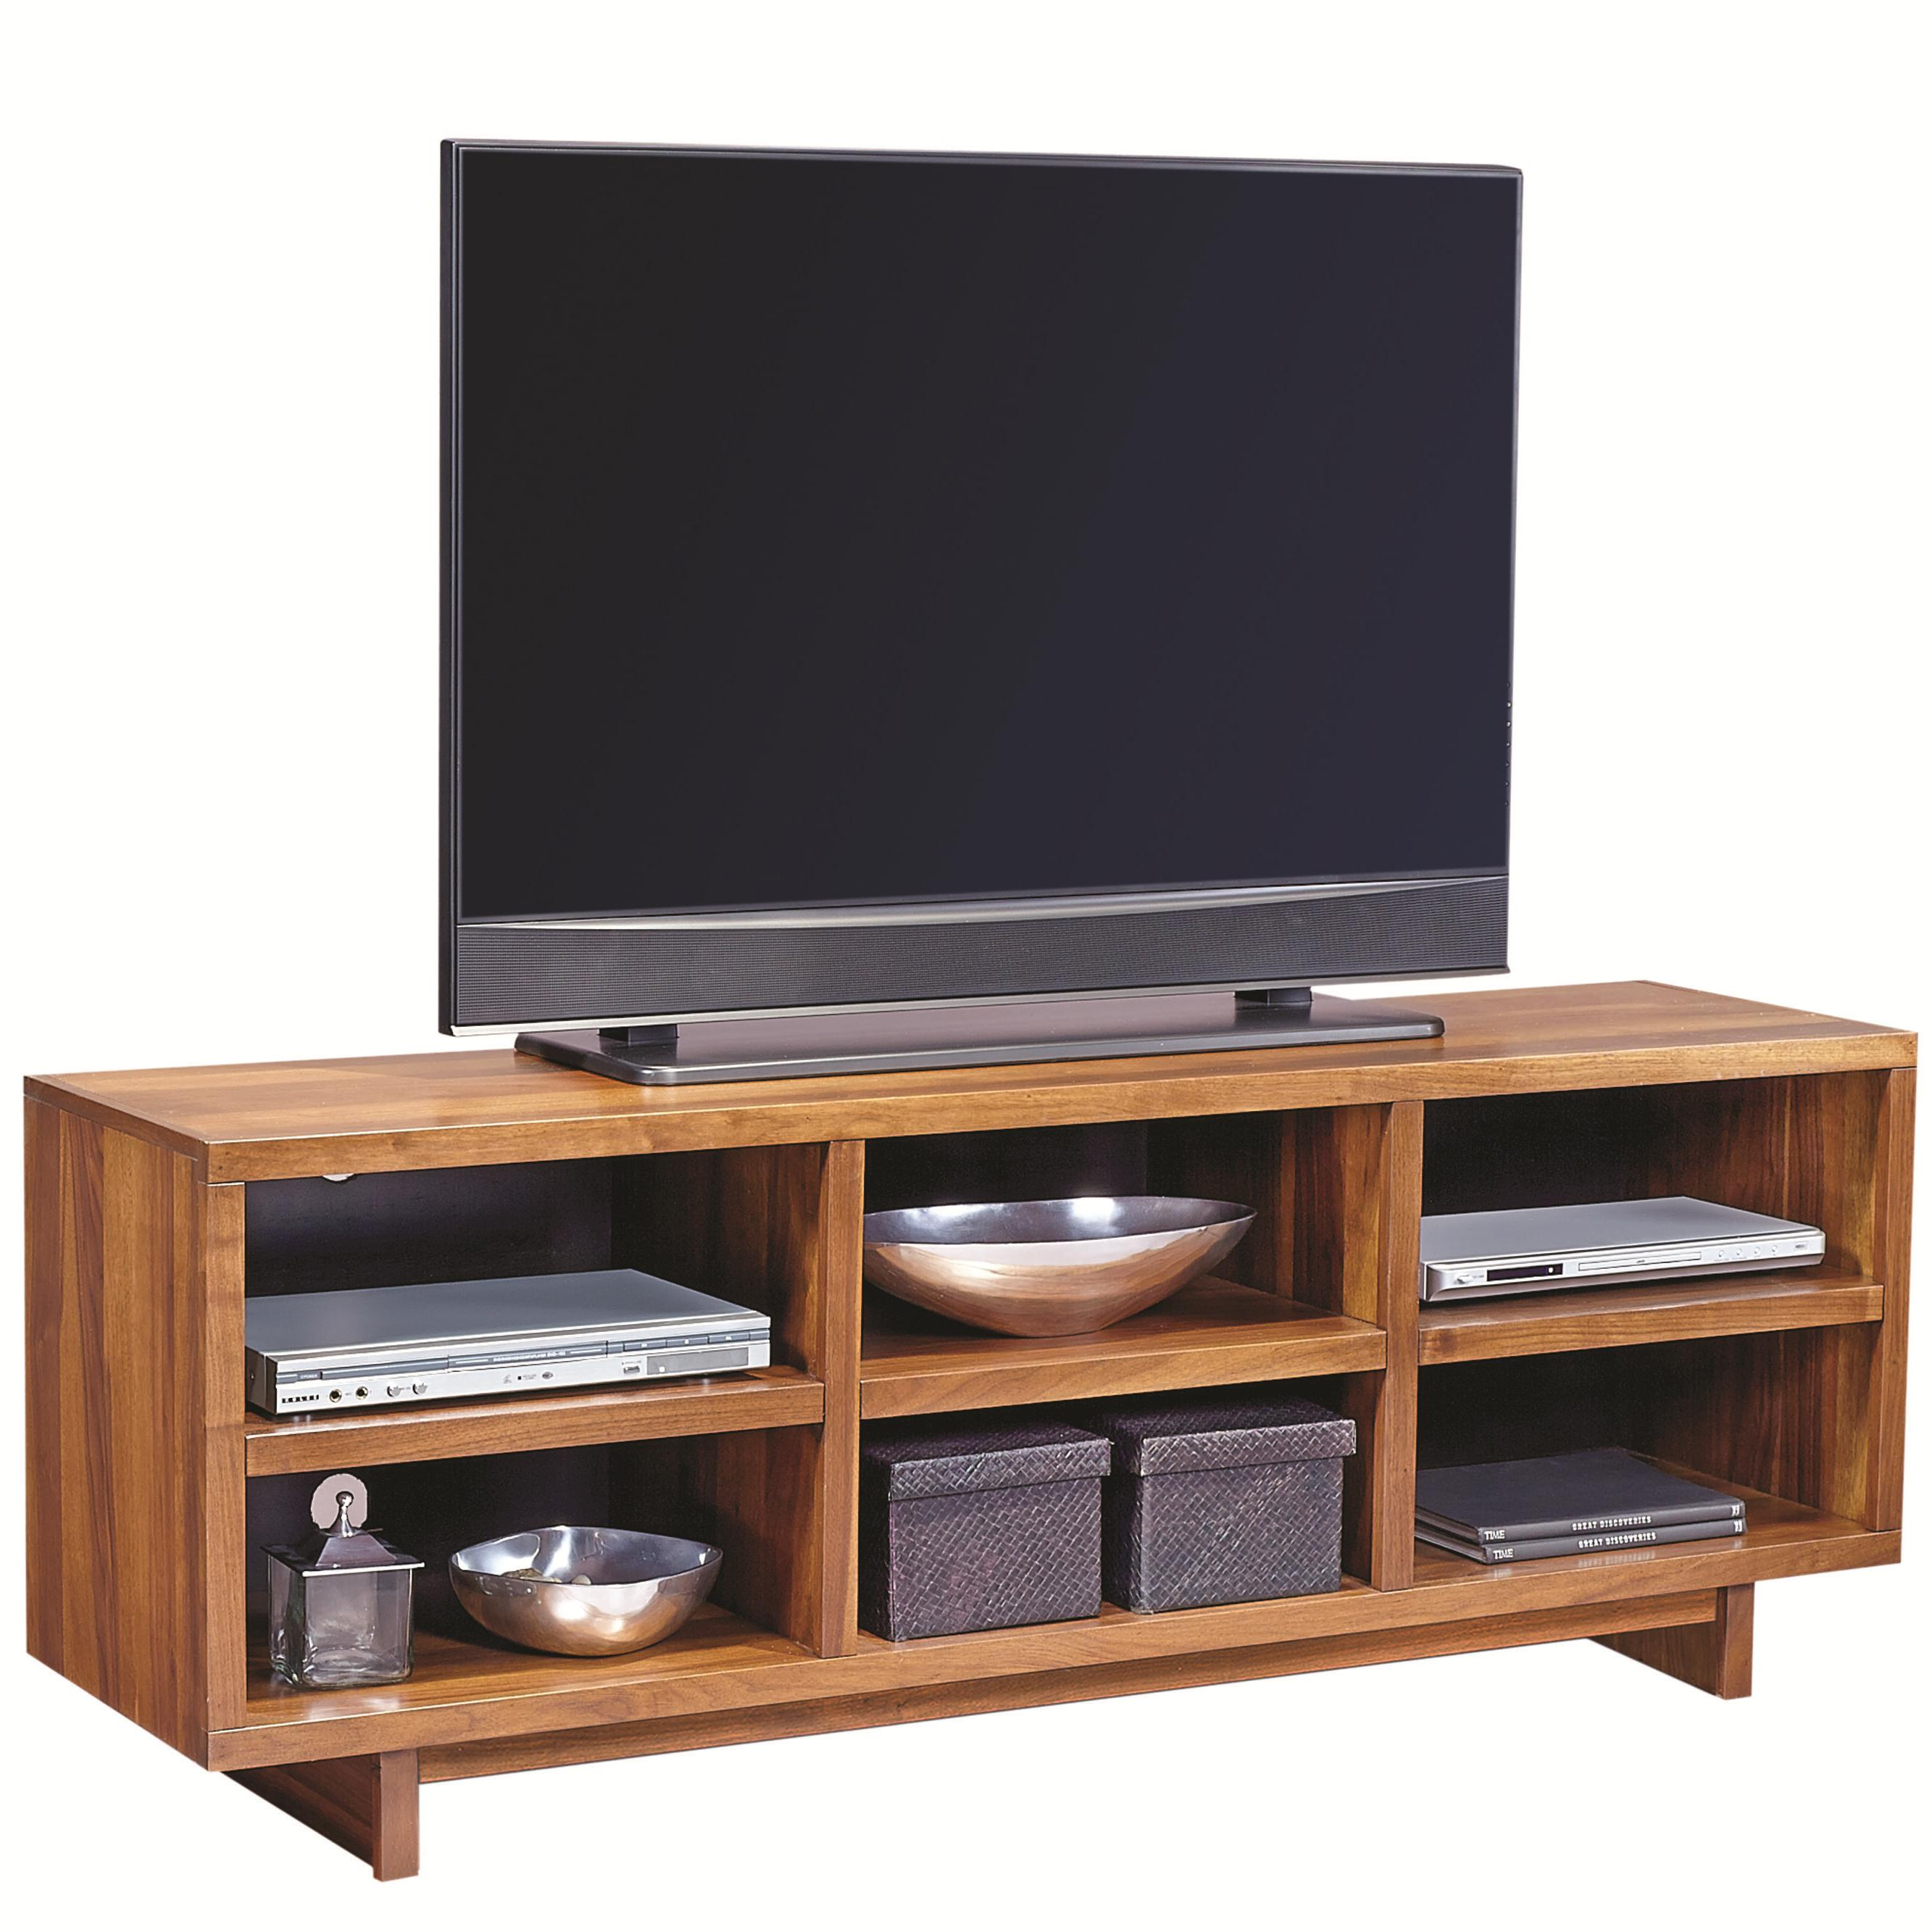 number bright walnut products furniture heights dunk amb end aspenhome open cupboard table item